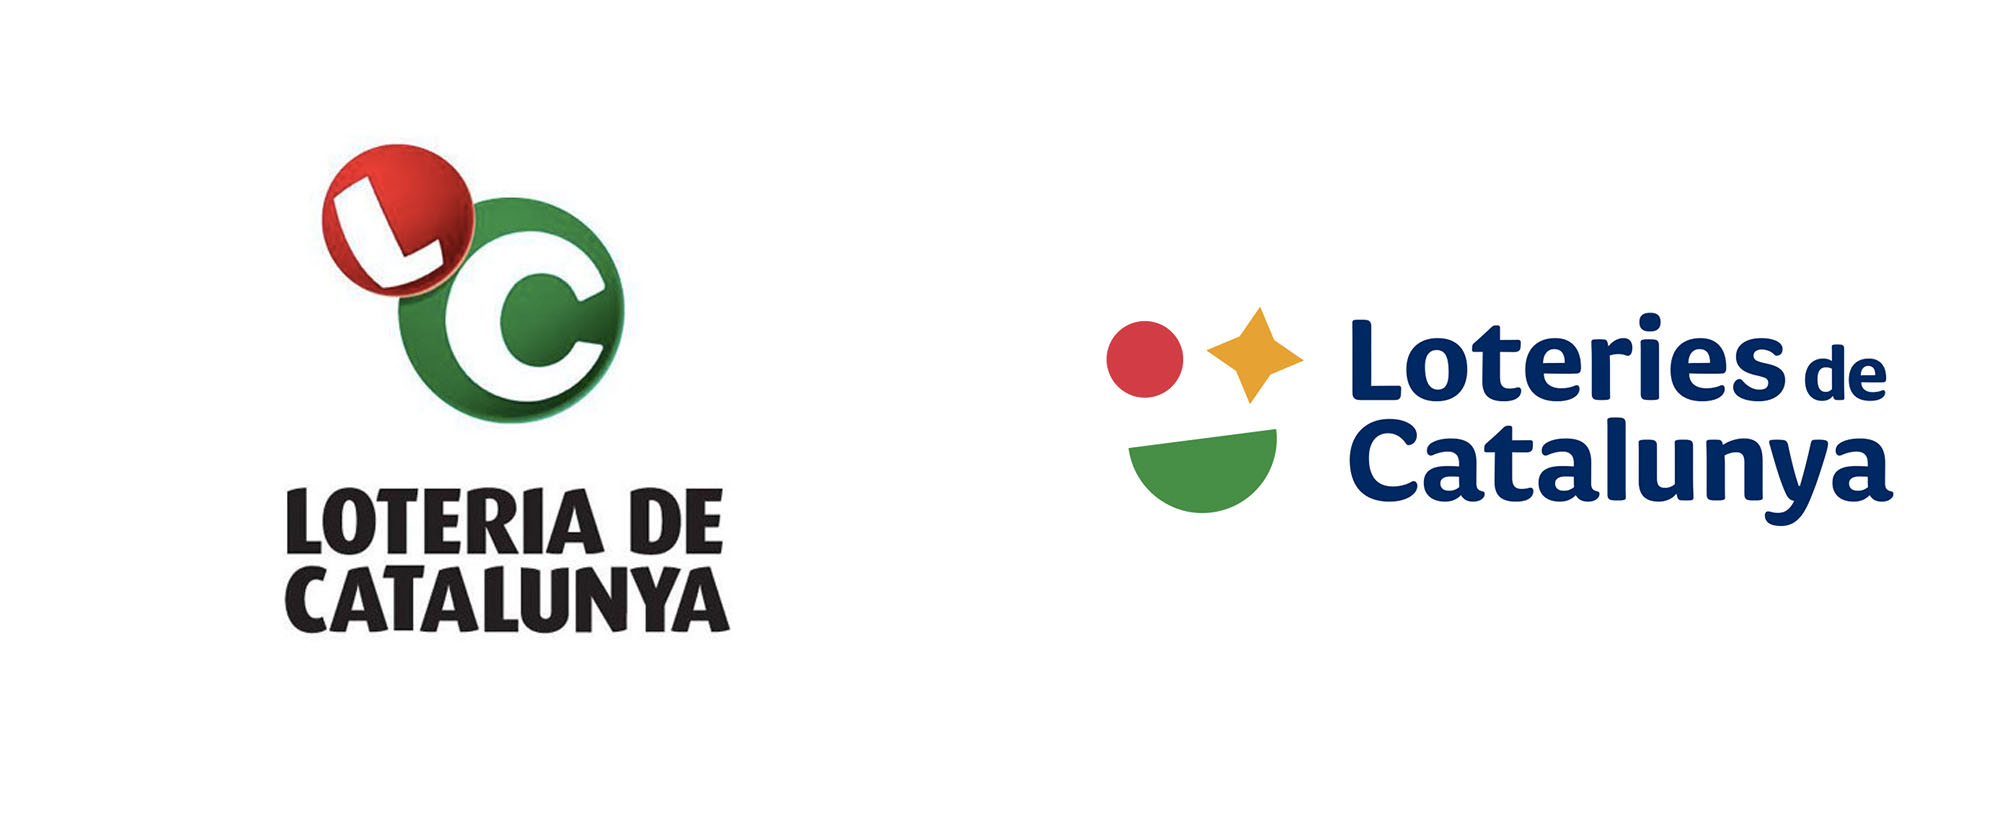 New Logo and Identity for Loteries de Catalunya by Summa